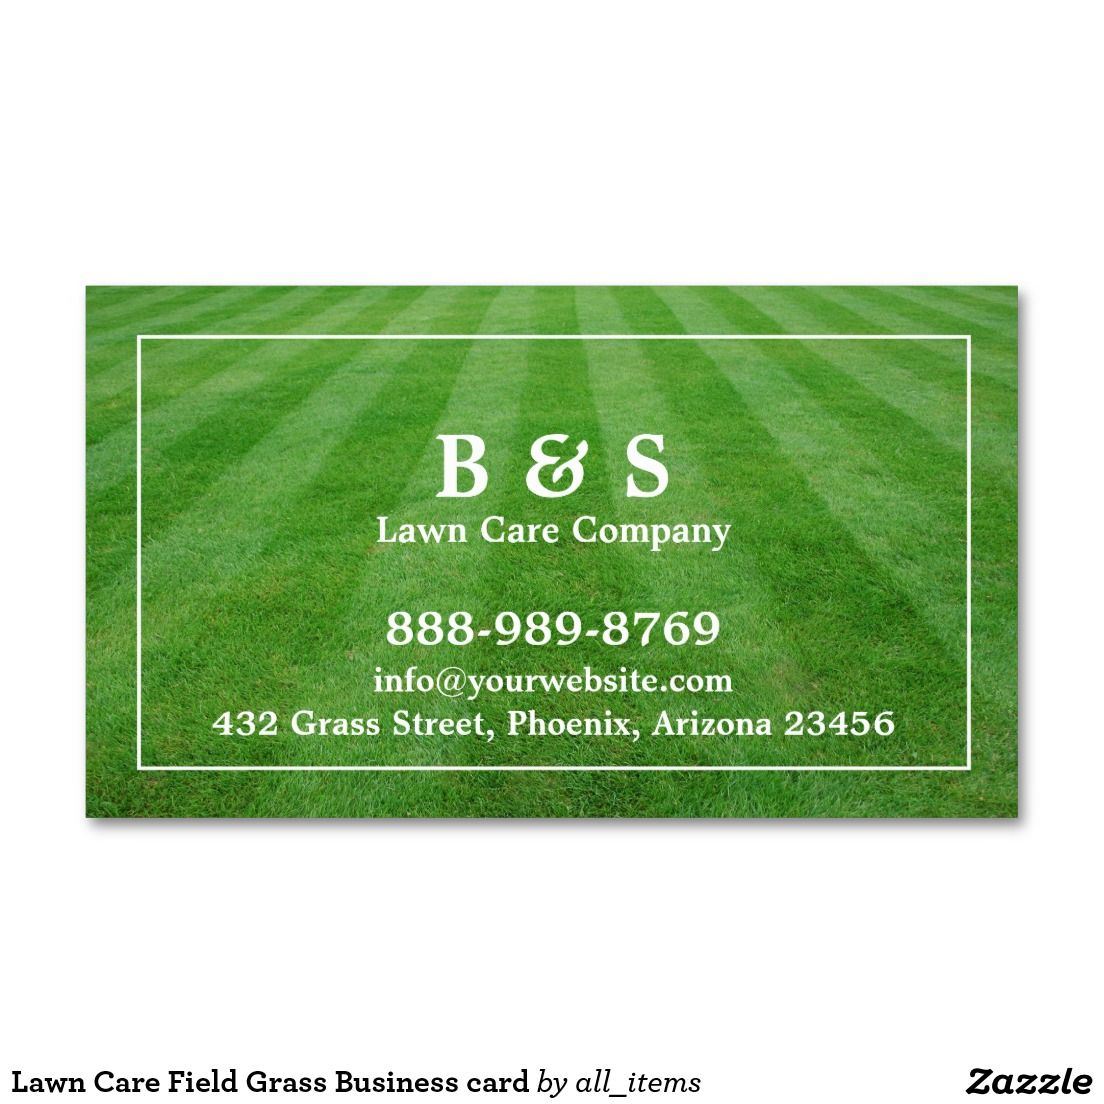 17 Best images about Business Cards: Landscaping on Pinterest ...